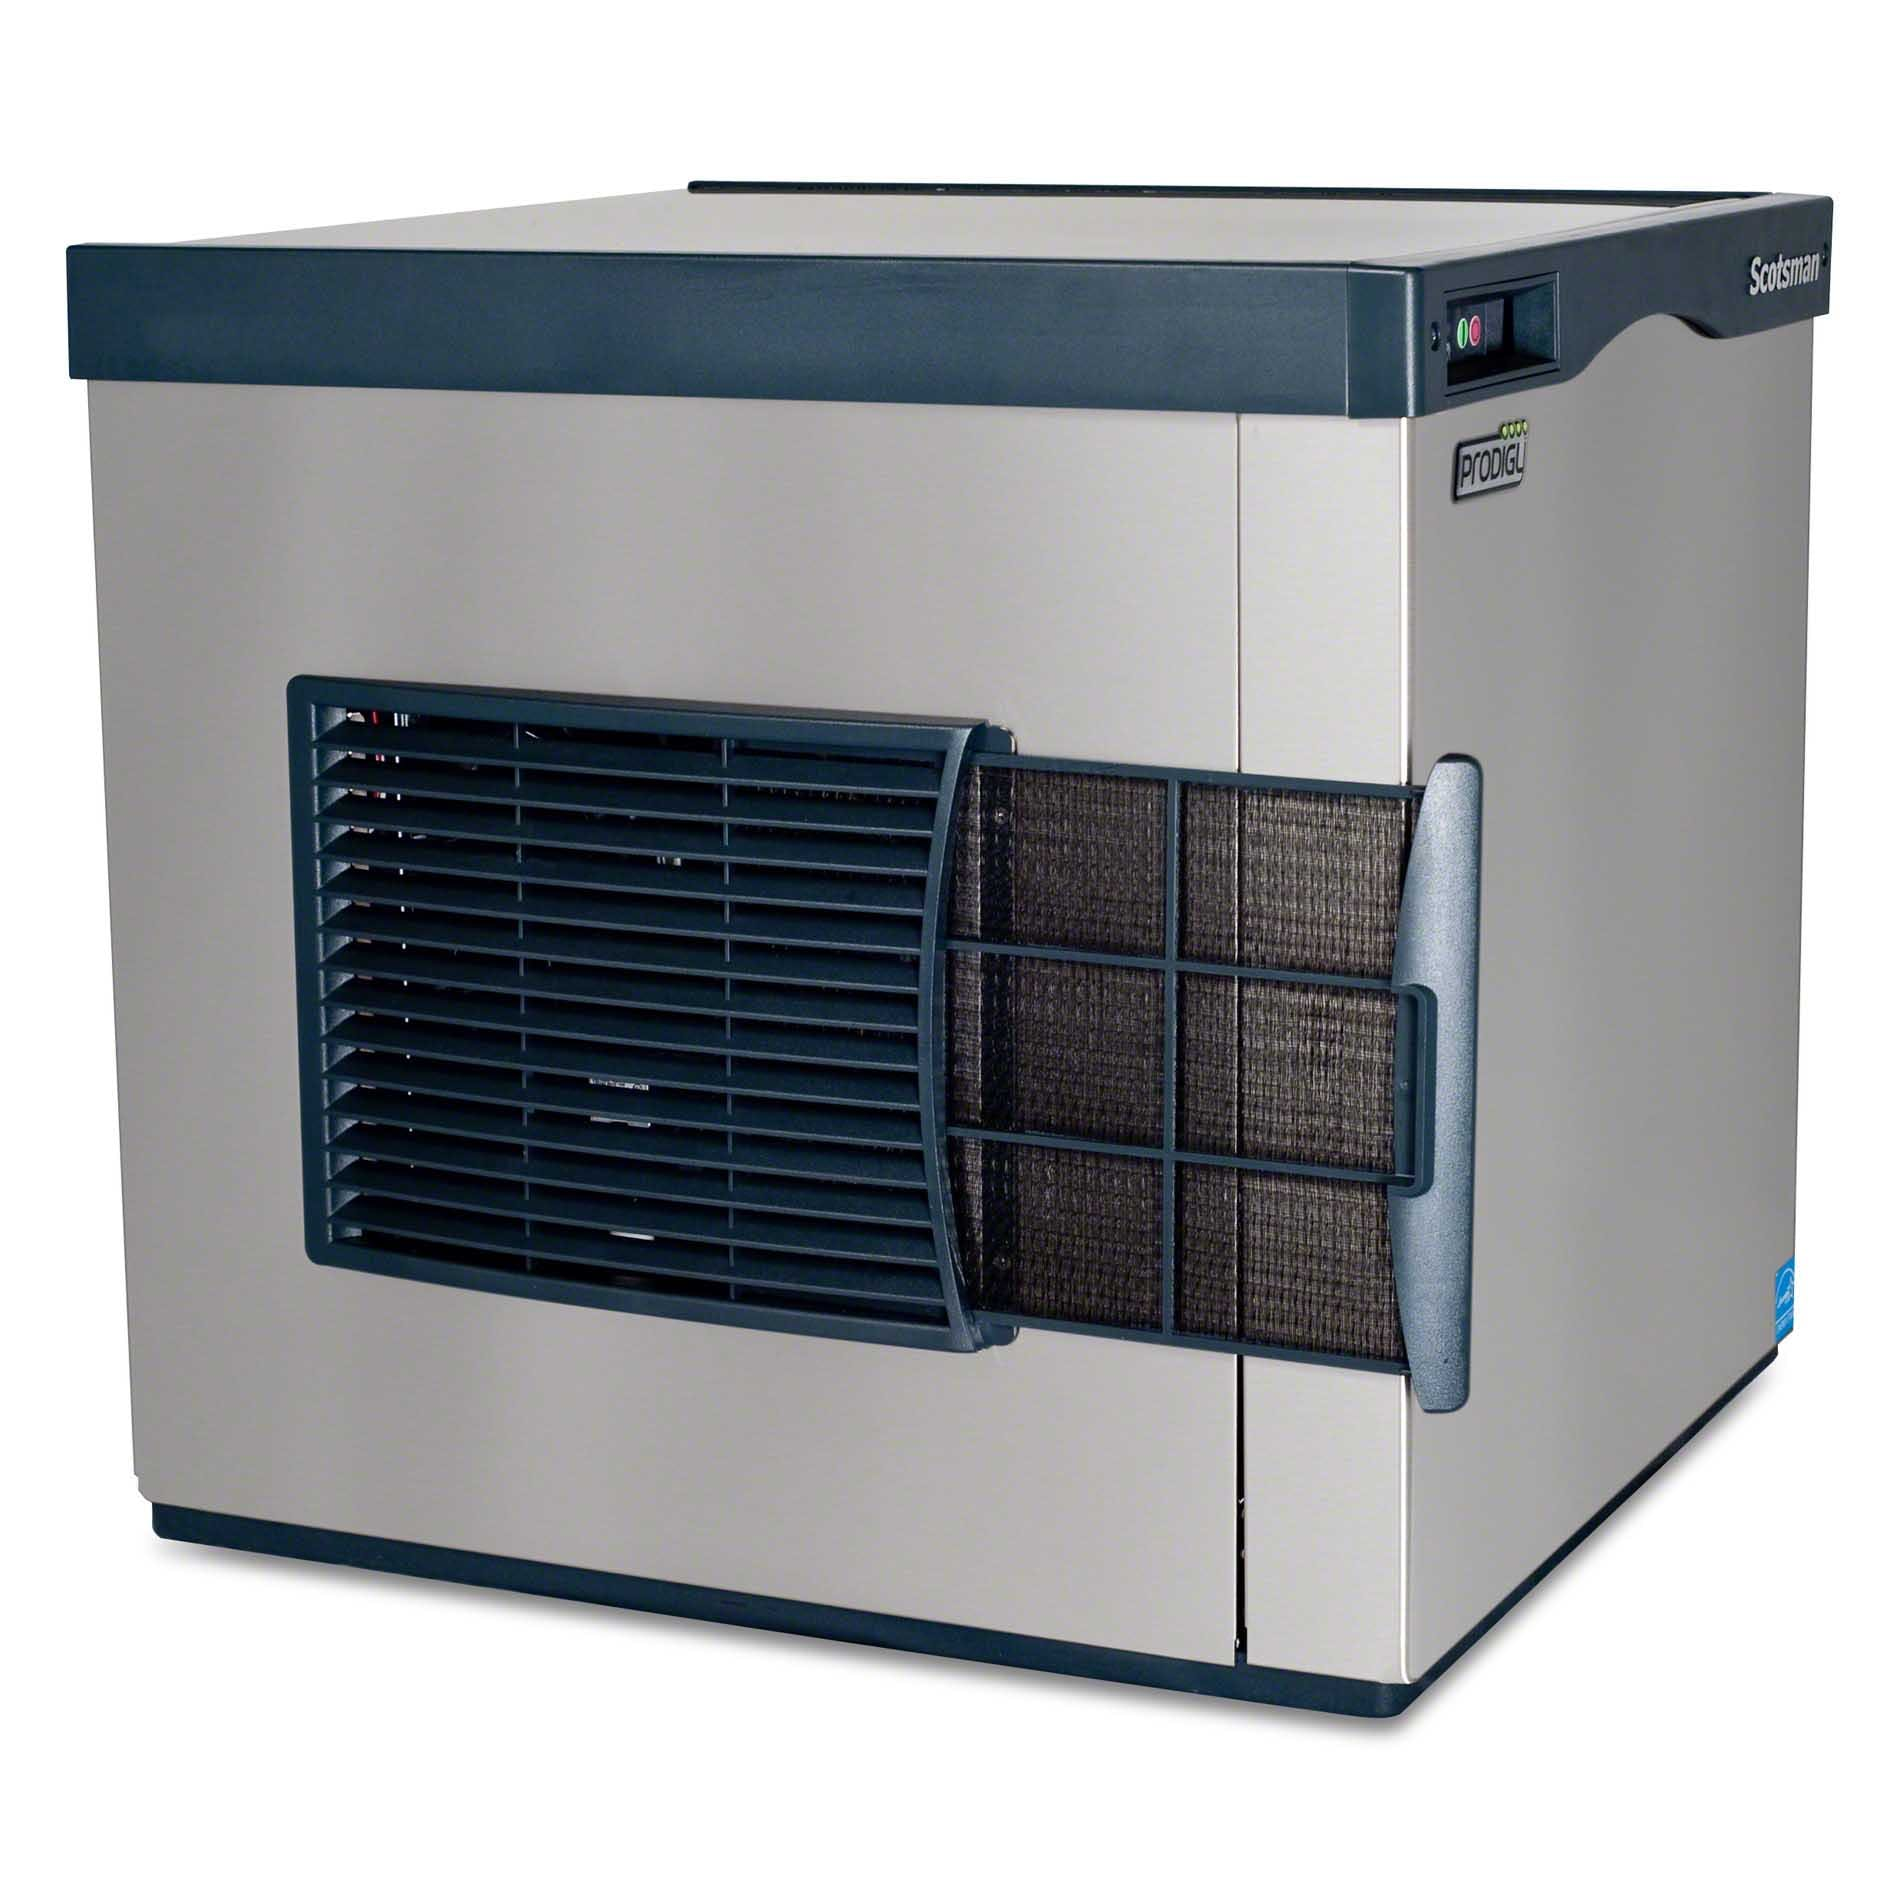 Scotsman - C0322MA-32A 356 lb Full Size Cube Ice Machine - Prodigy Series Ice machine sold by Food Service Warehouse